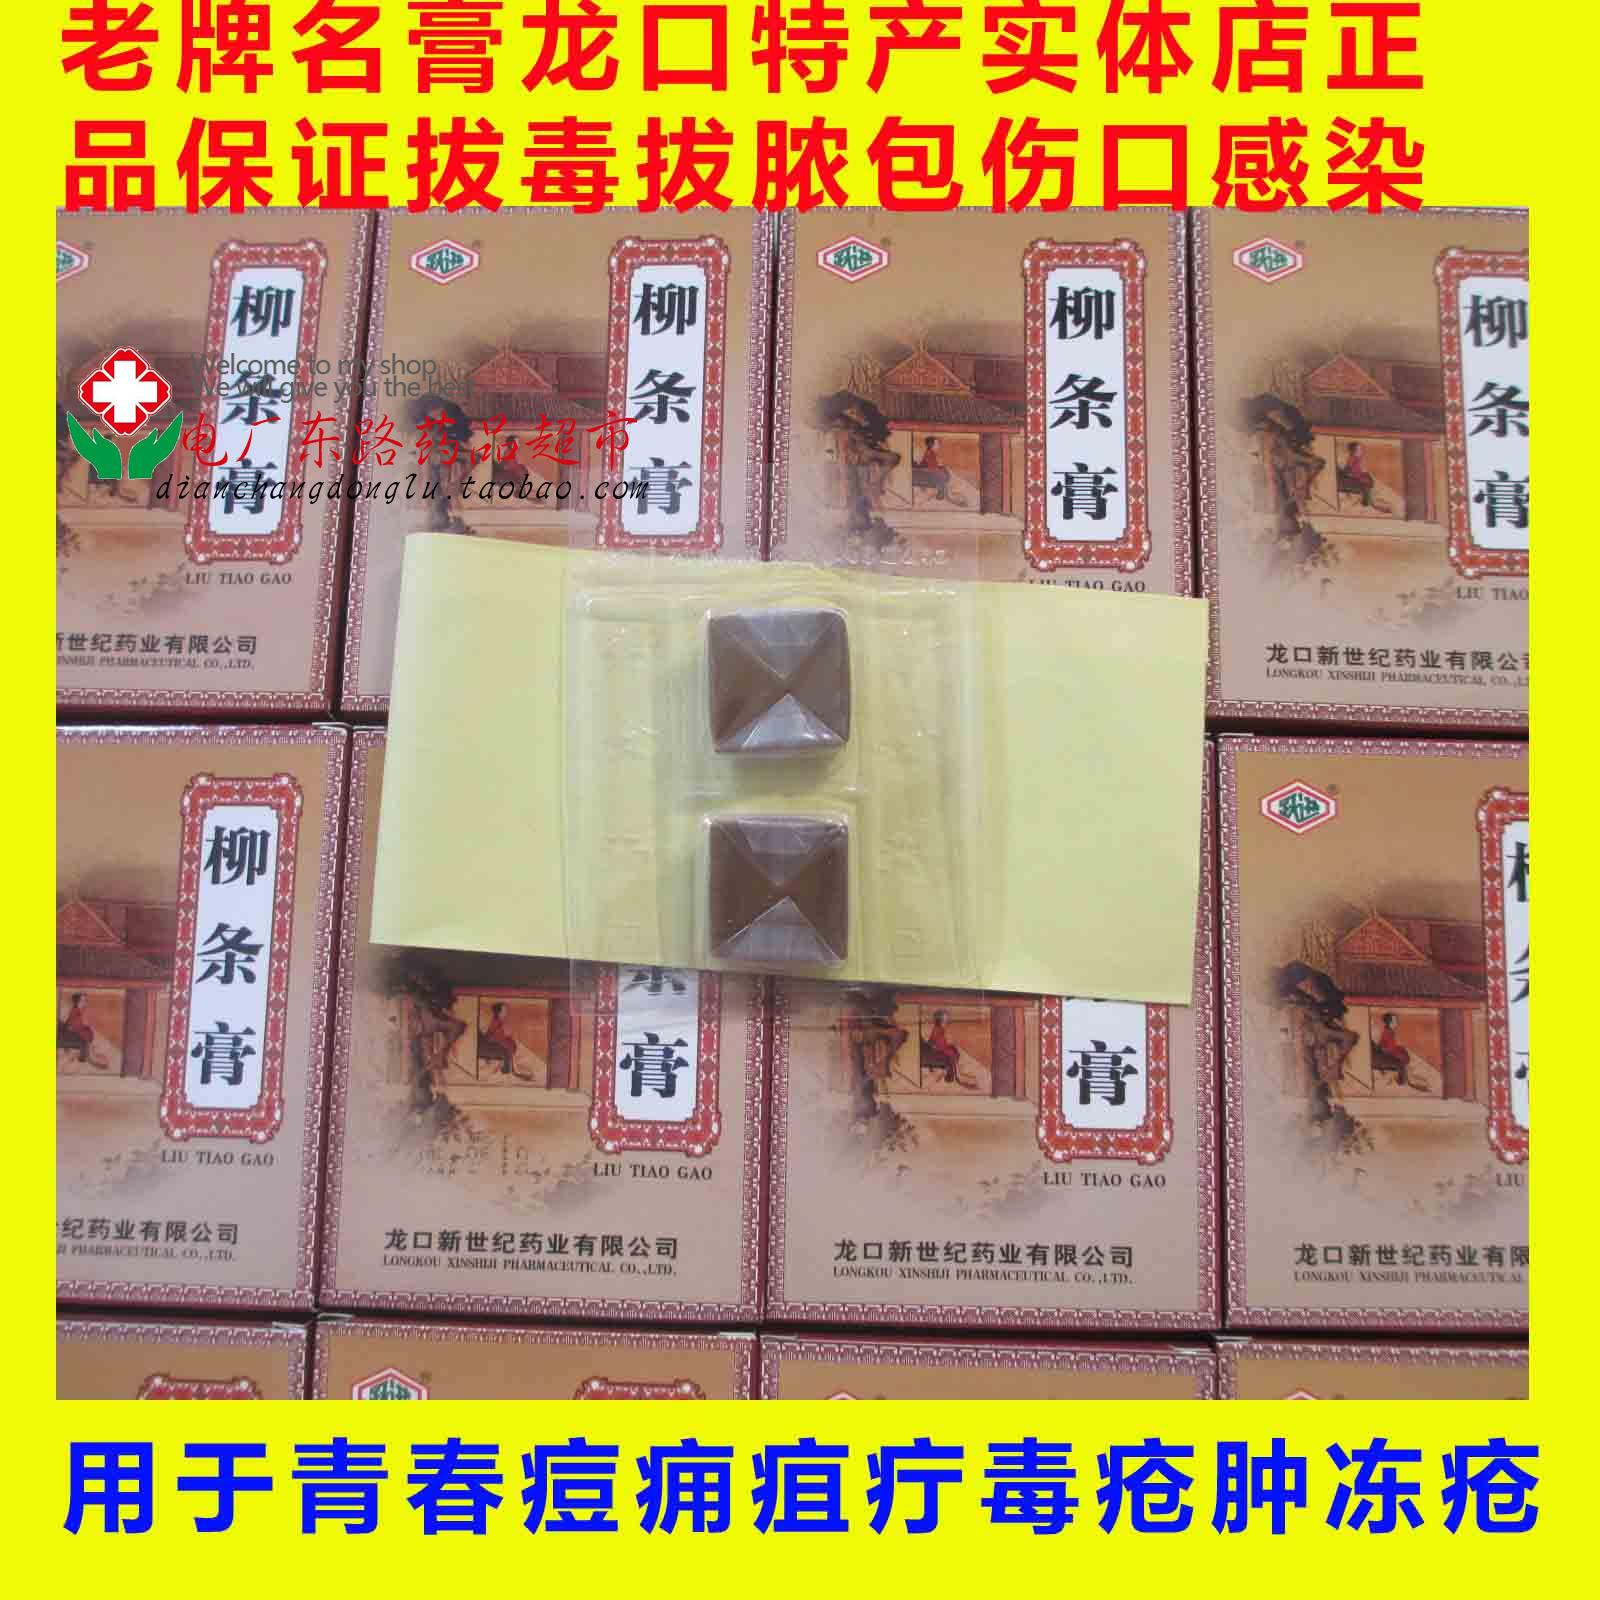 Longkou wicker brewed ointment for acne acne pustule pull stick traumatic infection carbuncle furuncle sore chilblain